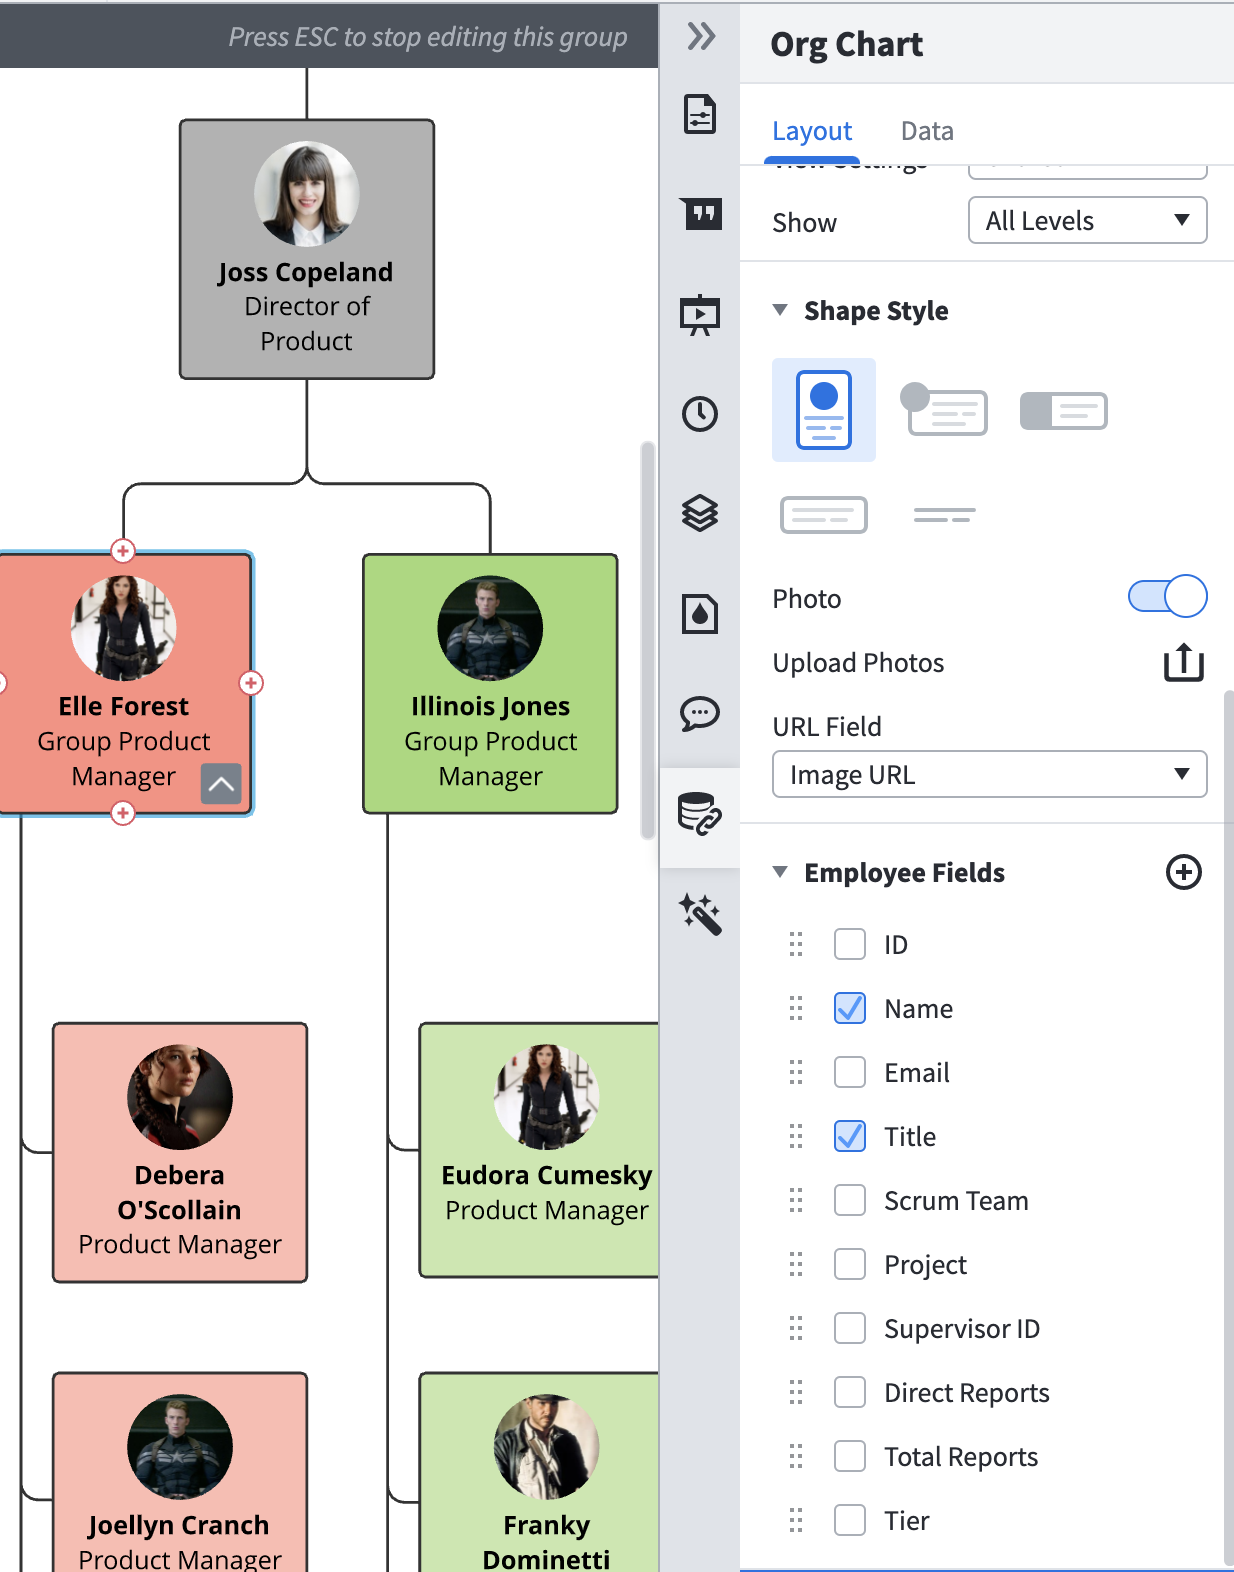 choose employee to add to org chart